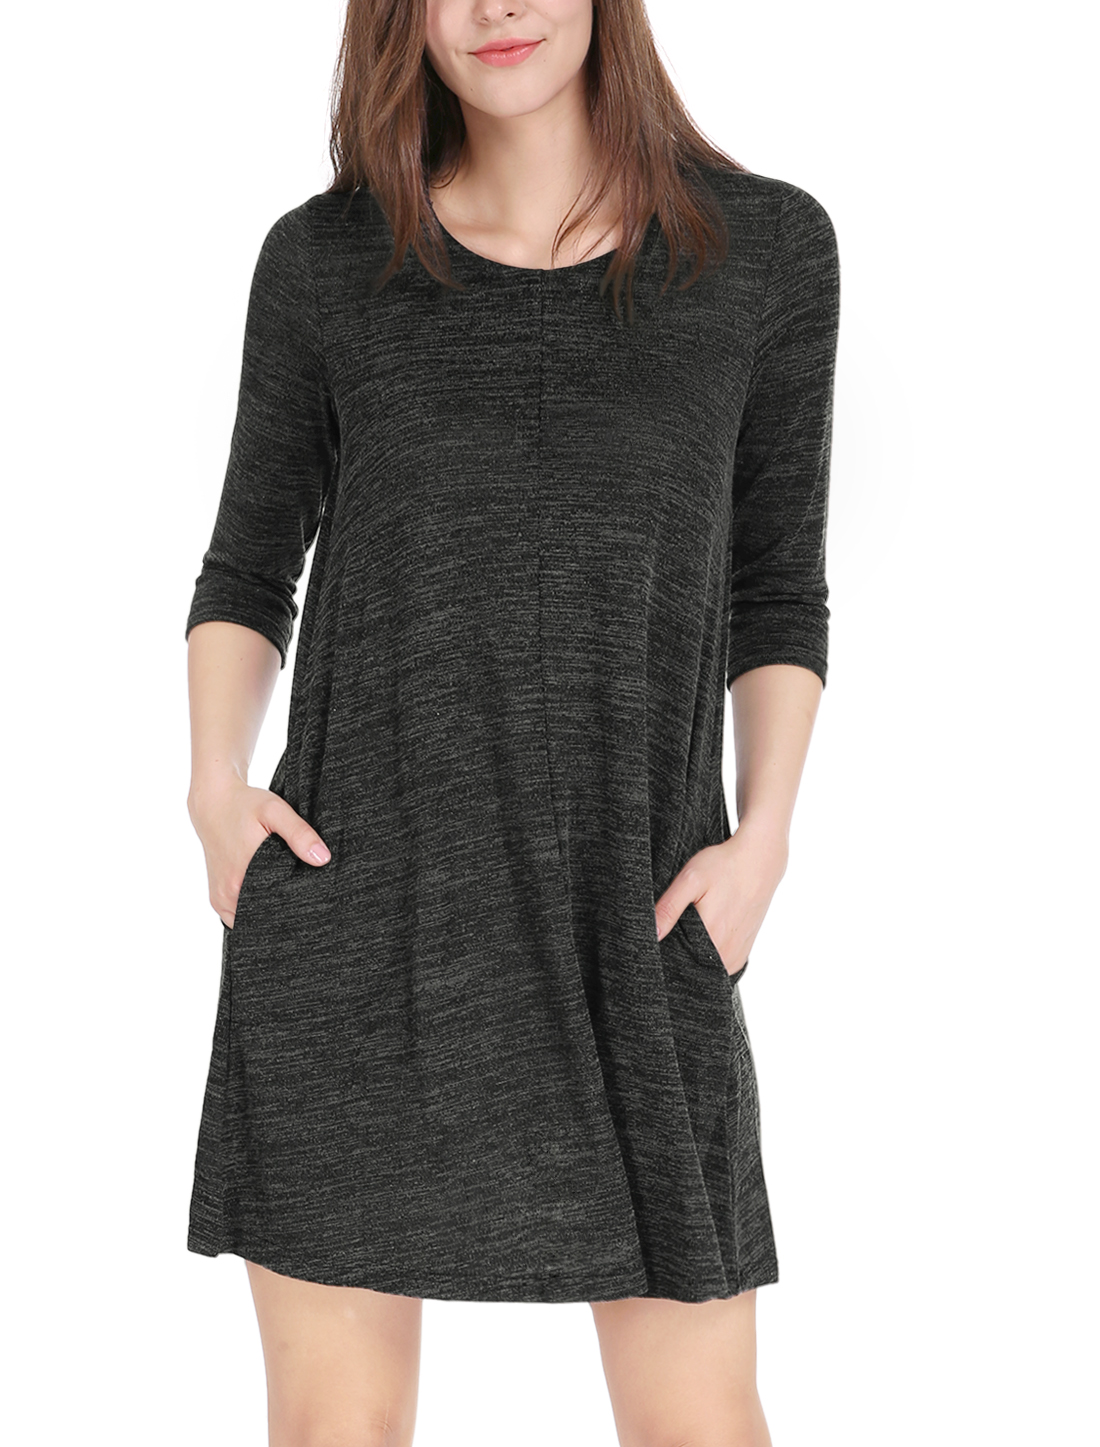 Women 3/4 Sleeves Round Neck Above Knee Loose T-shirt Dress Black XL